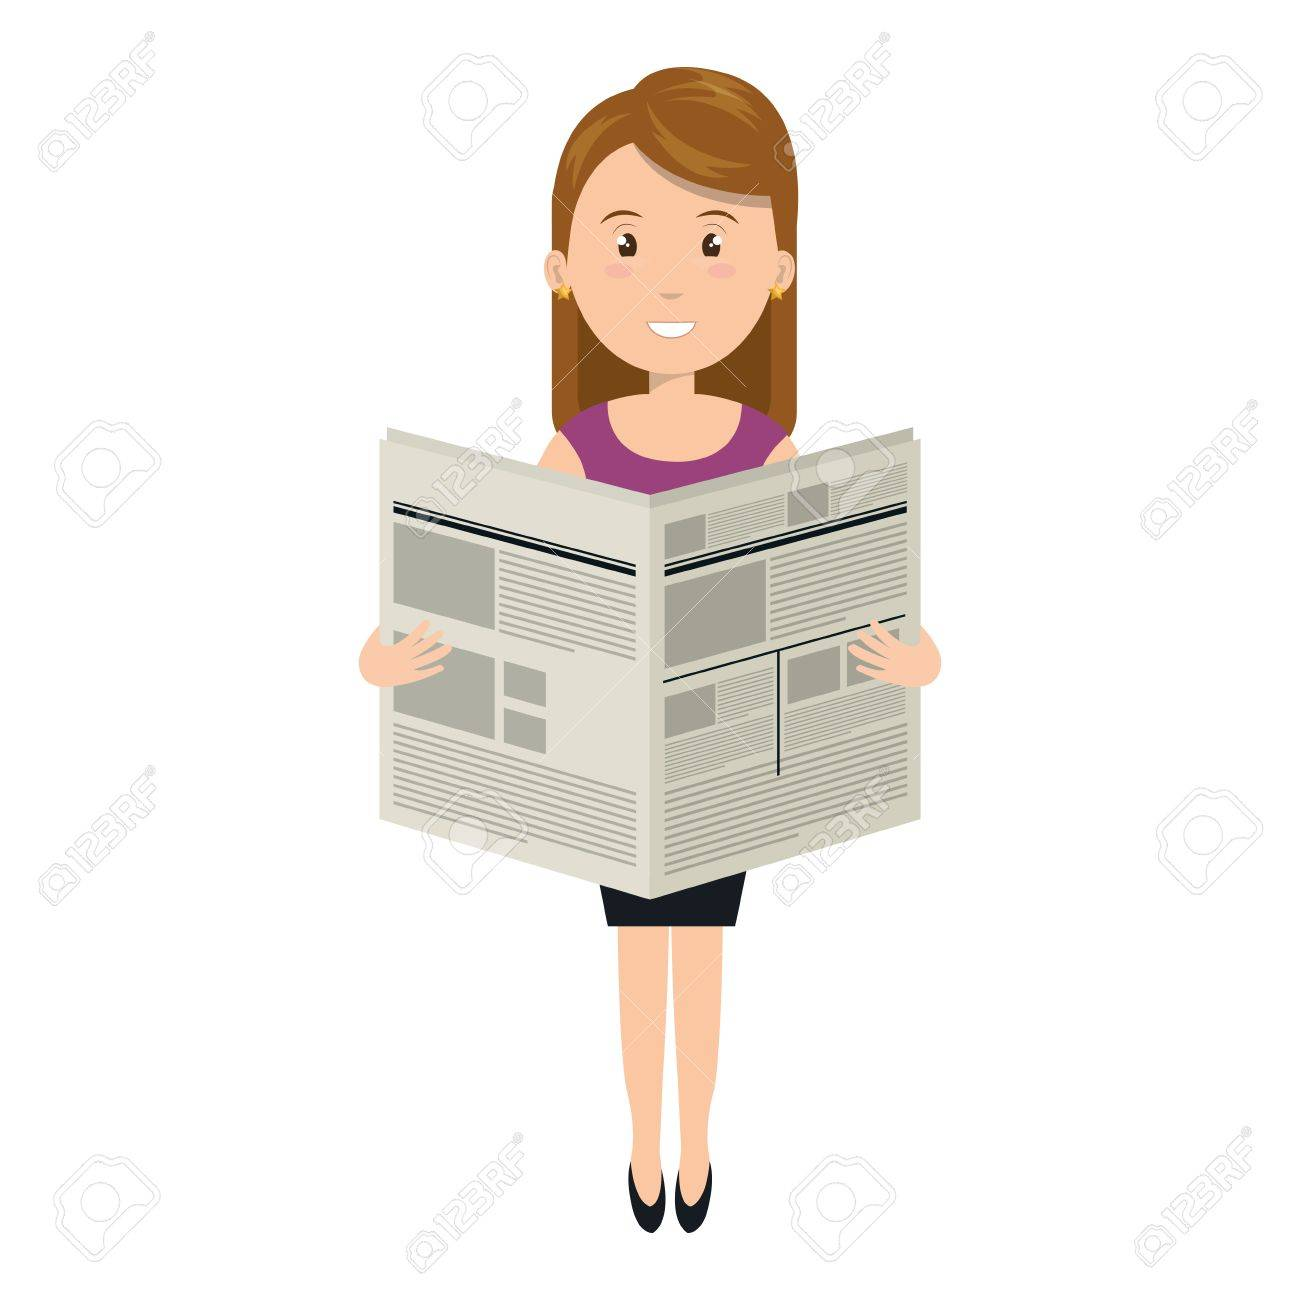 young woman reading newspaper avatar character vector illustration